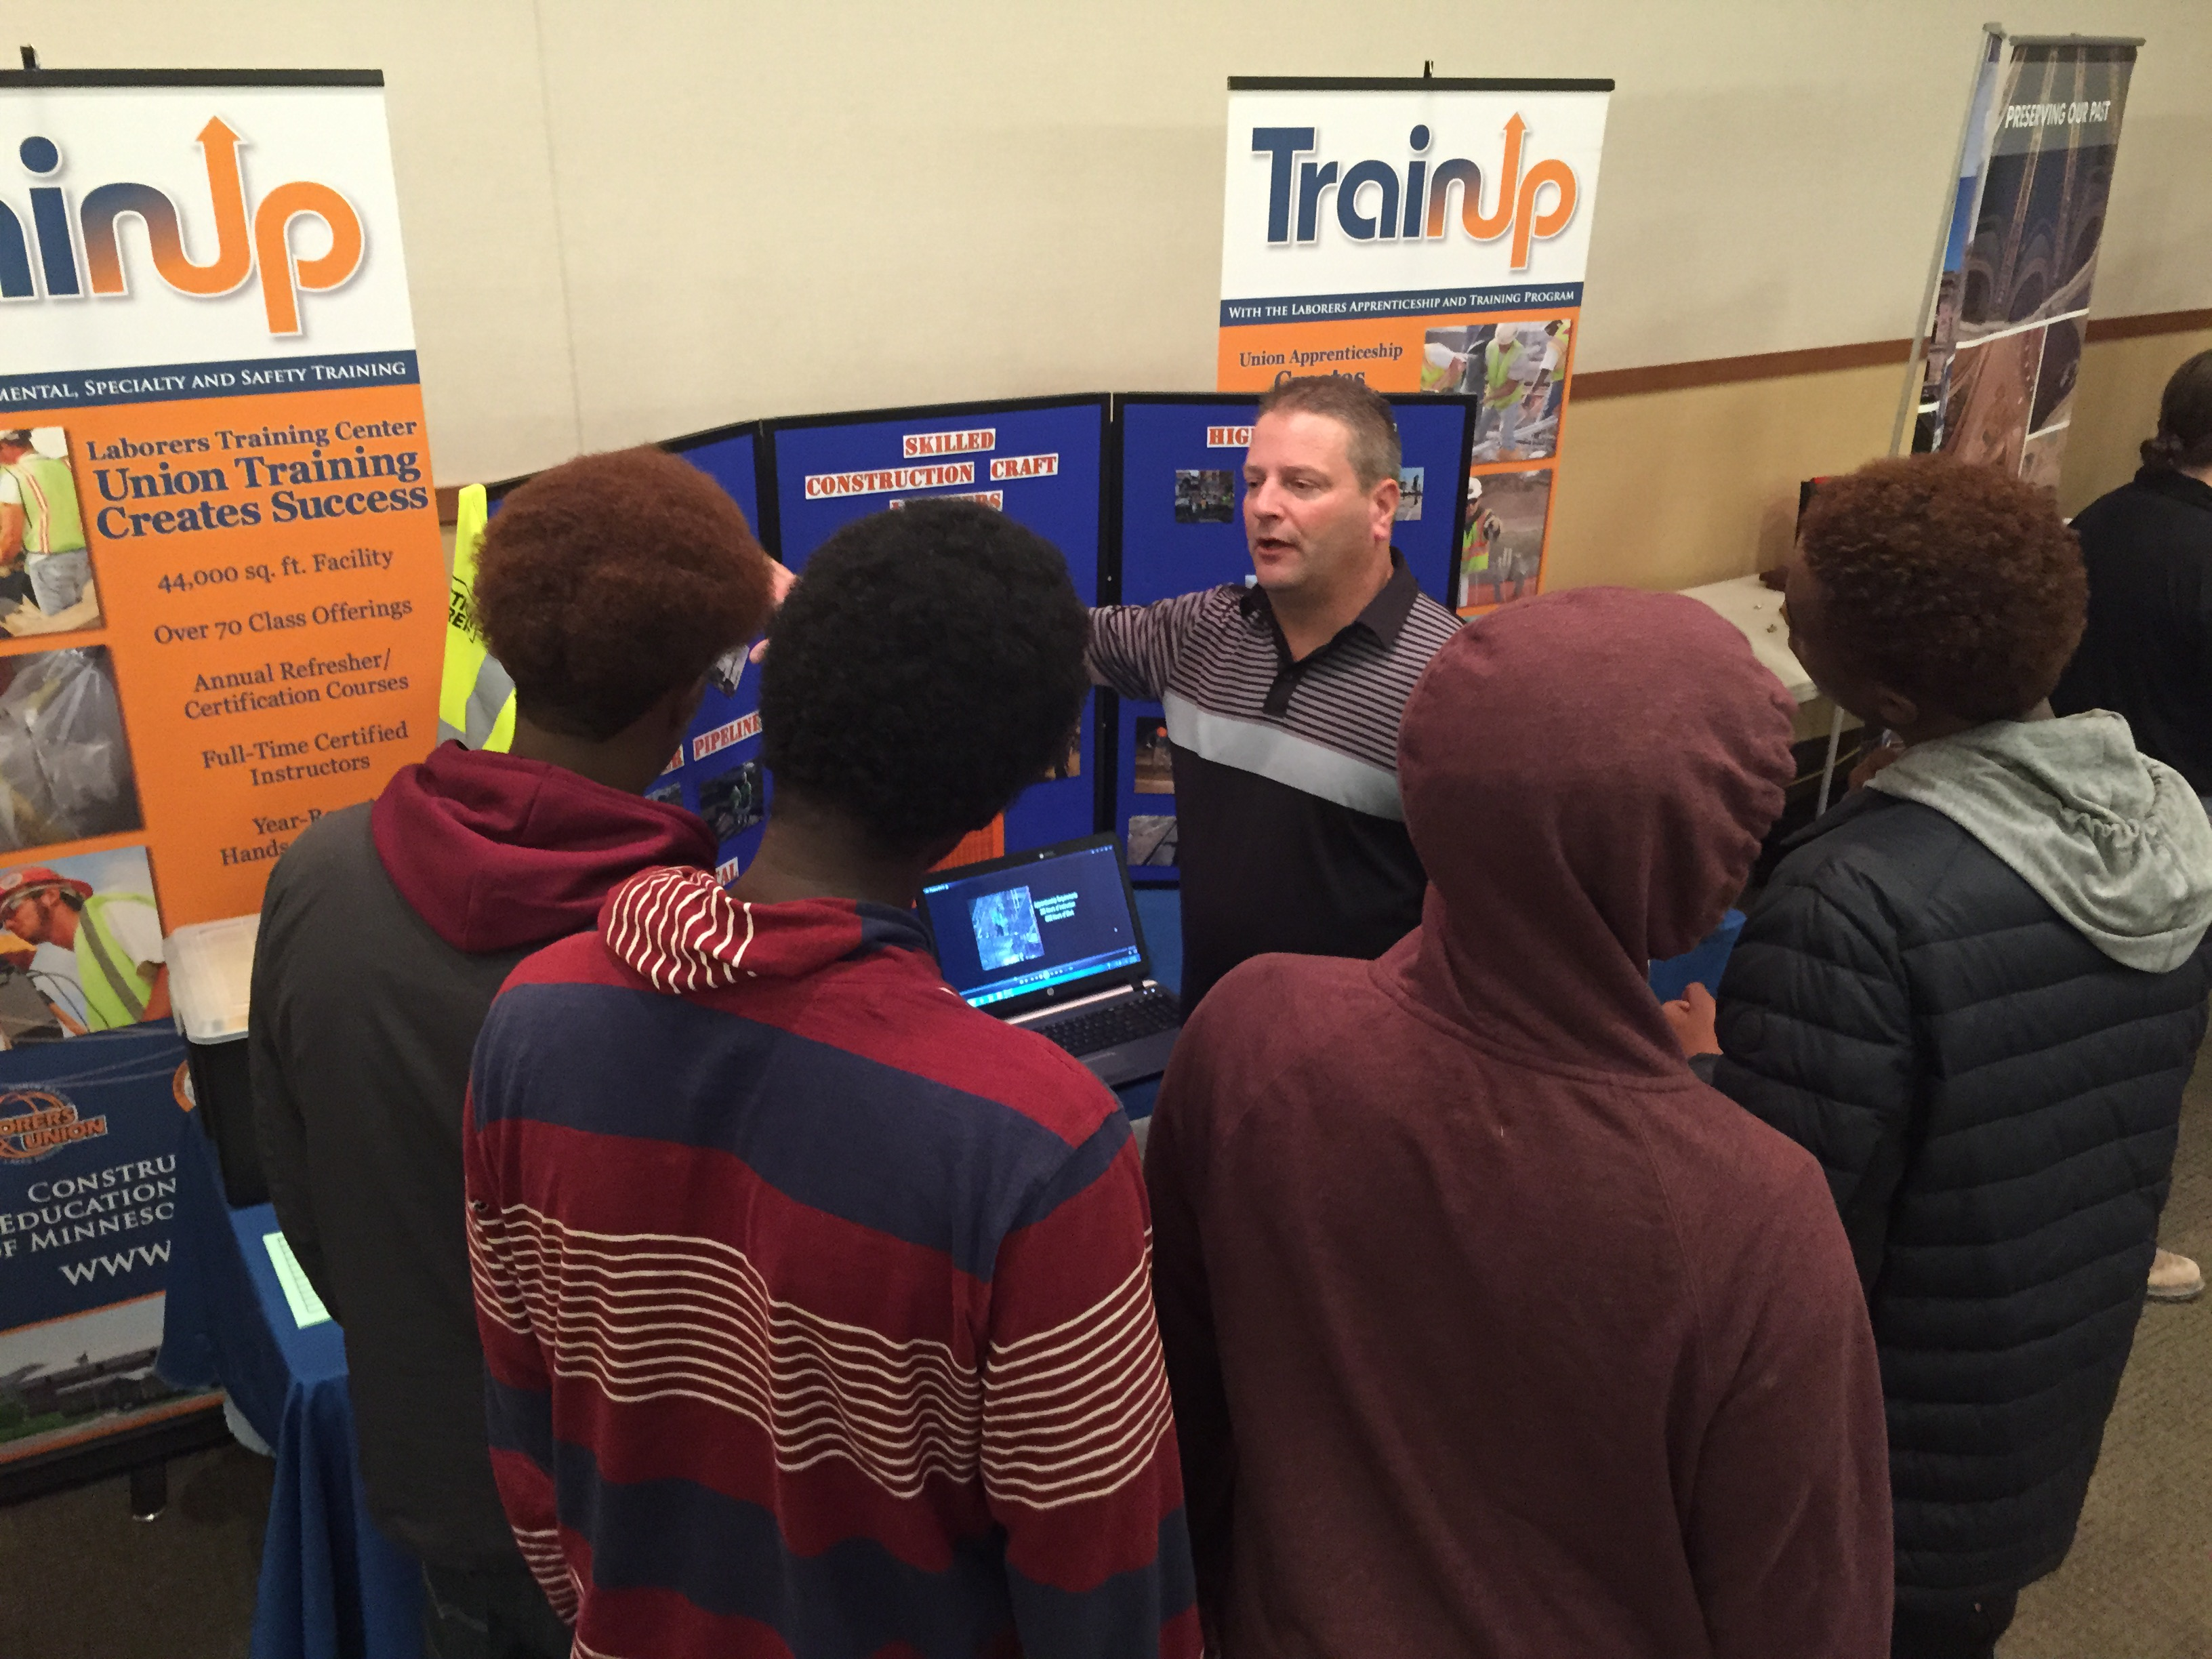 Our Youth at the 2015 Trades Expo